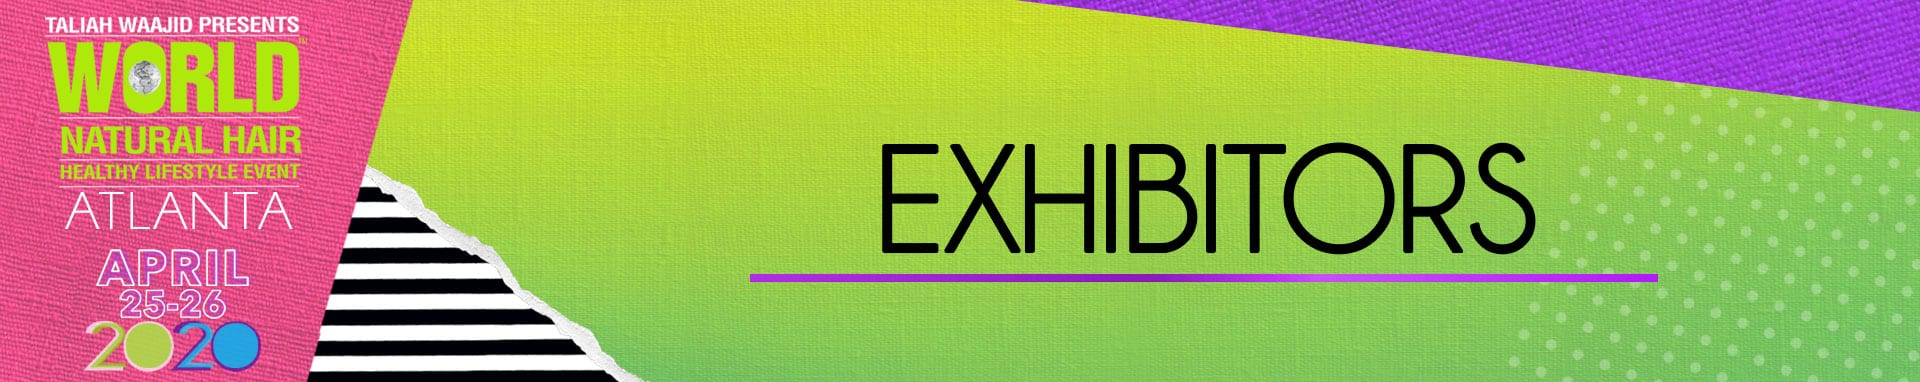 Exhibitors_Header